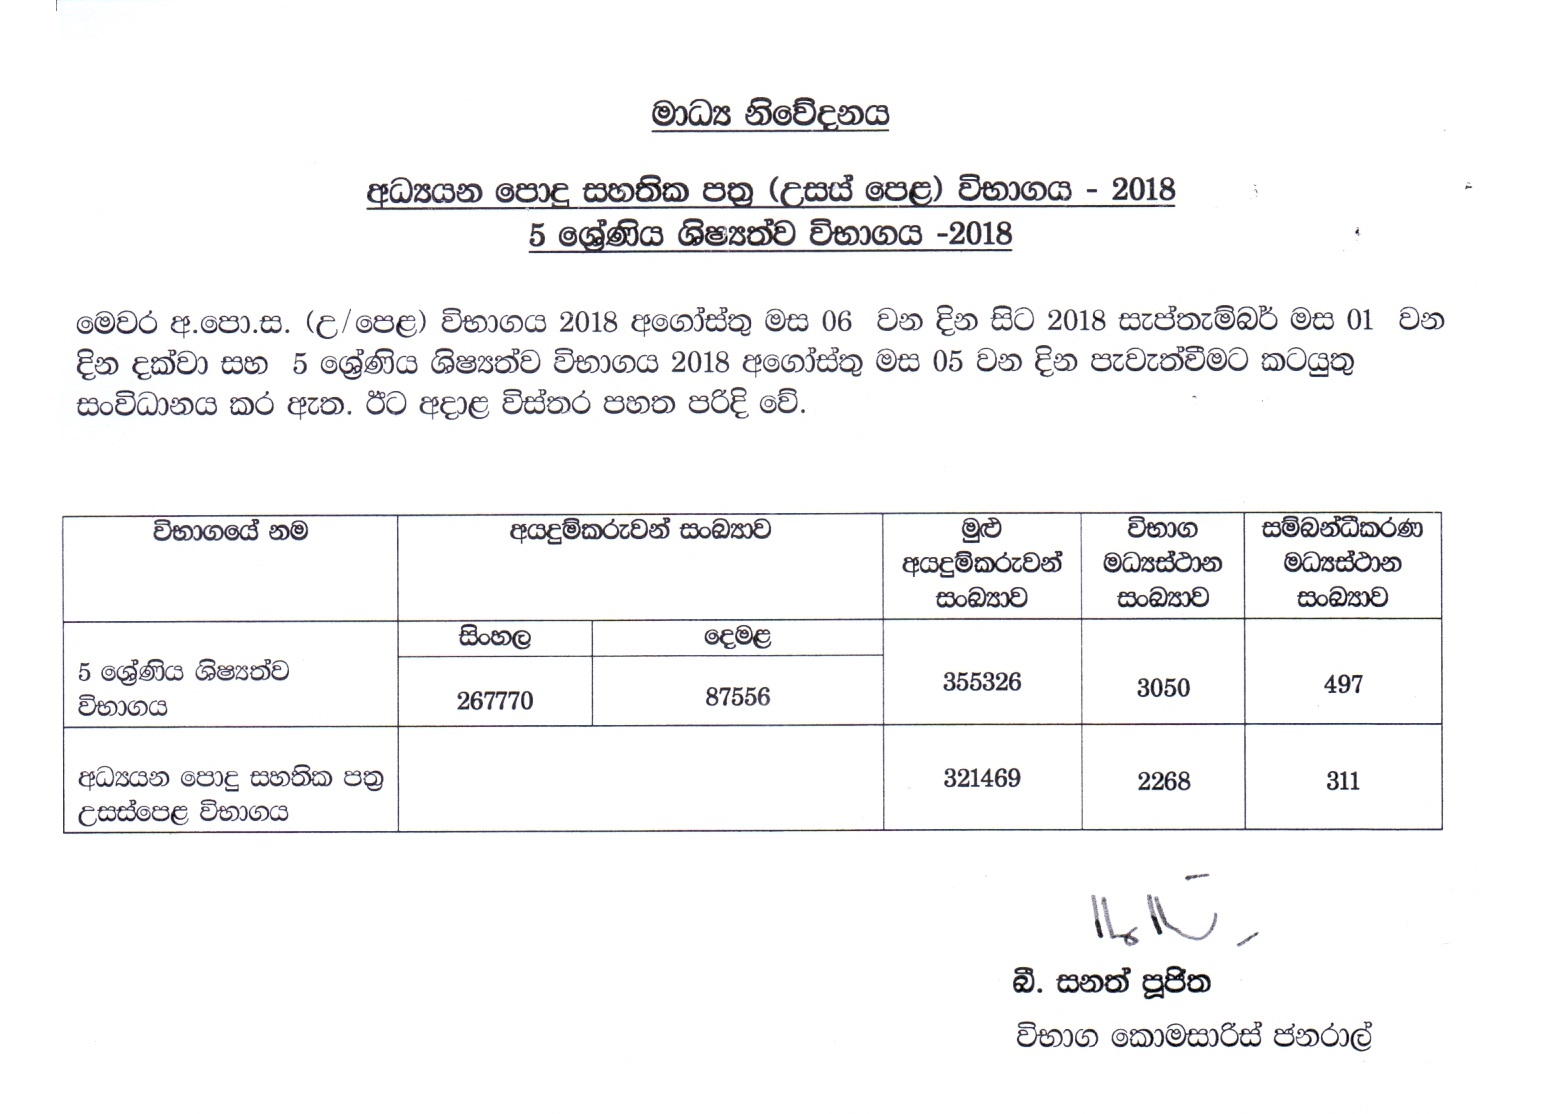 News - Department of Examinations - Sri Lanka